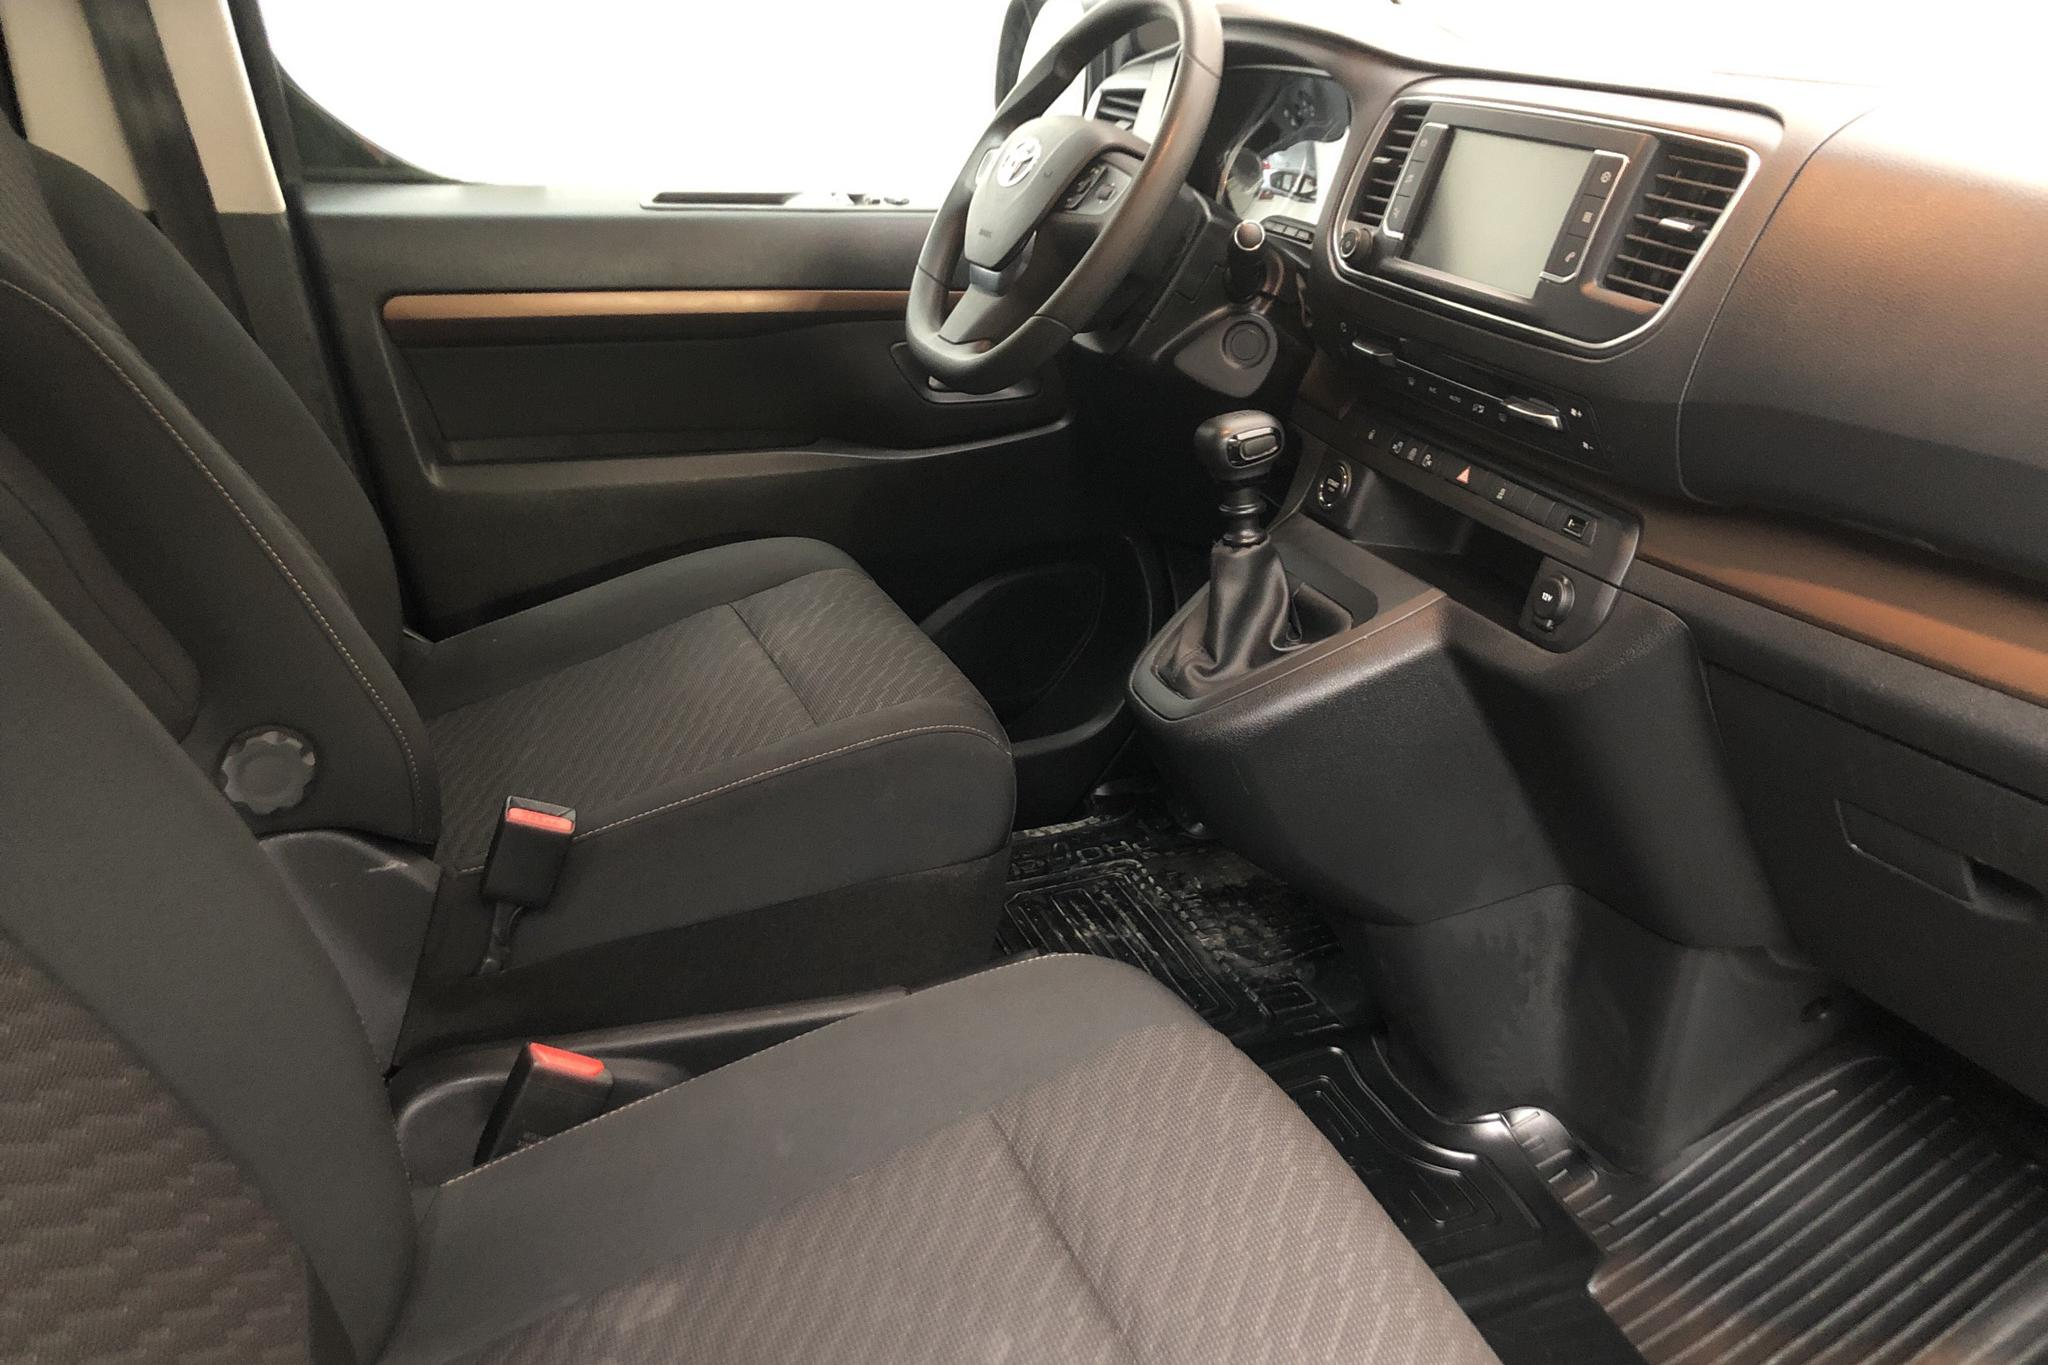 Toyota PROACE Verso 2.0D (150hk) - 63 150 km - Manual - black - 2018